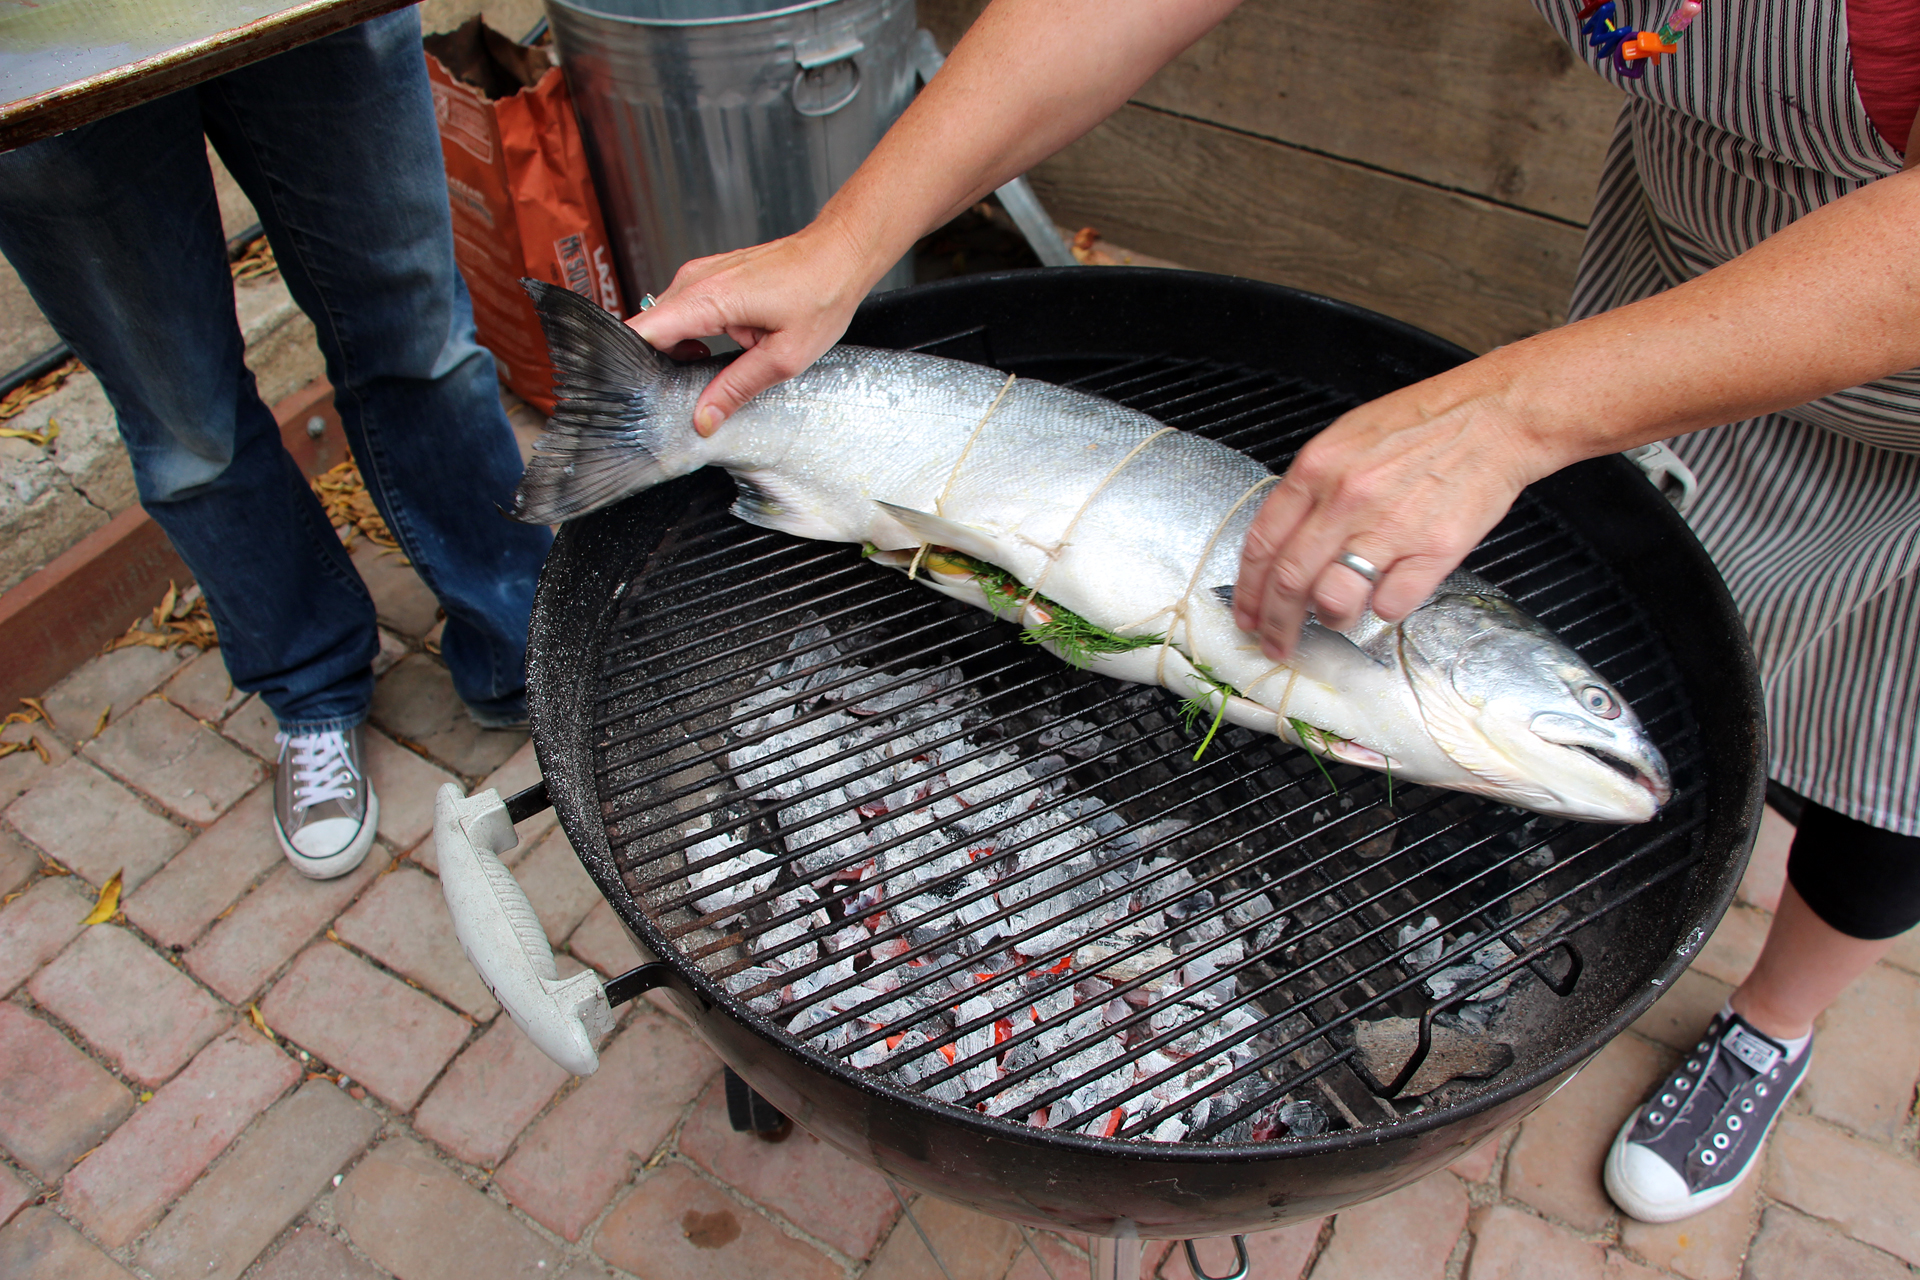 Grease the grill with oil, then lay the salmon on the cooler side of the grill.